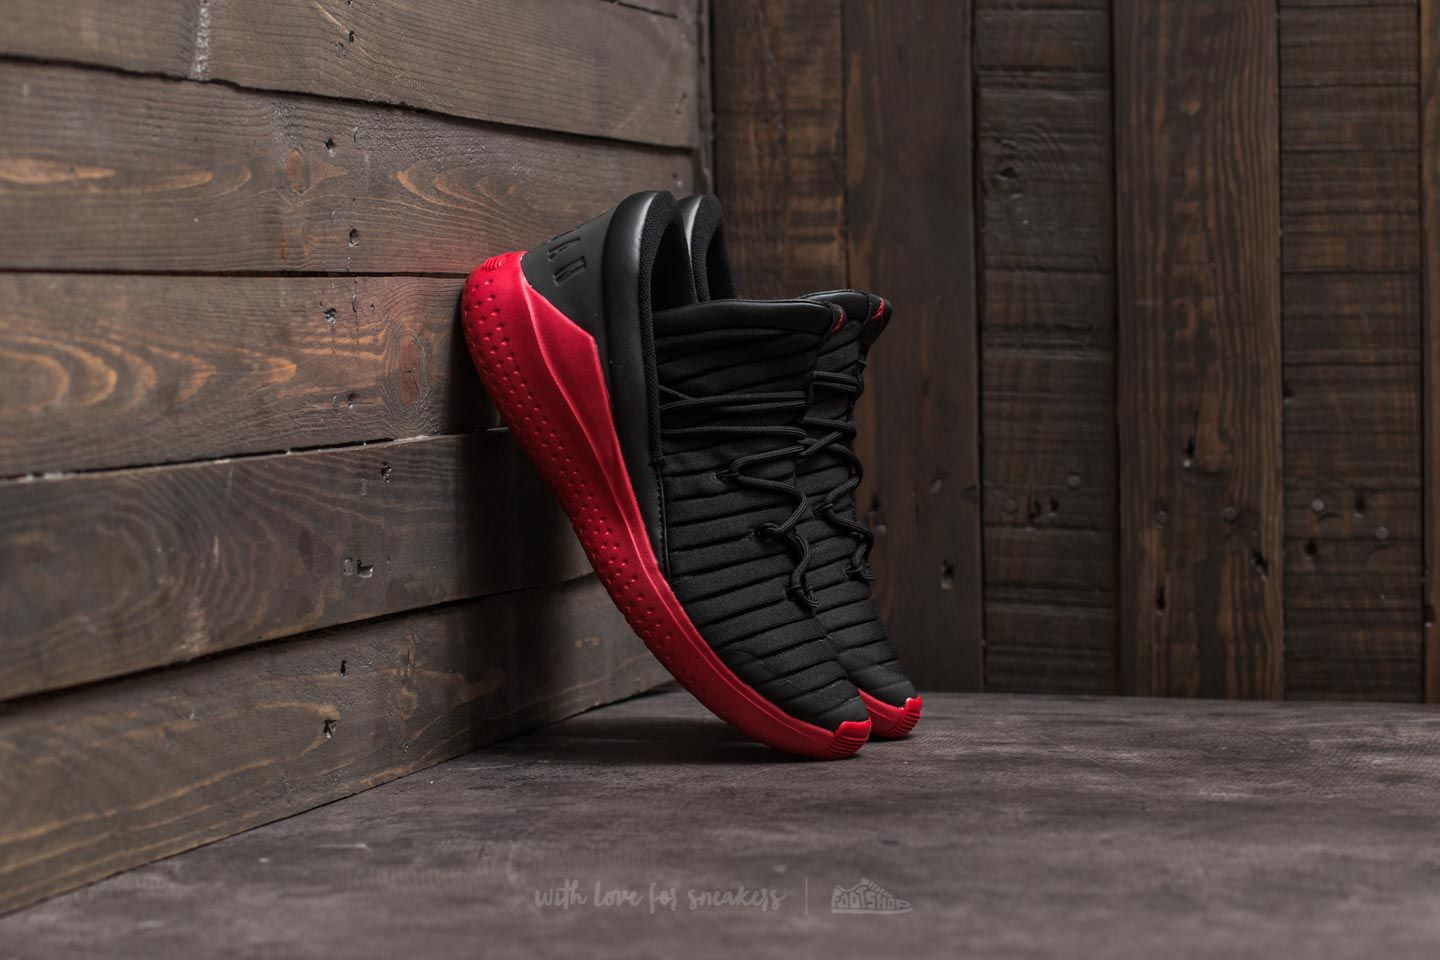 273a6c2363eaaa 883412805148 UPC - Jordan Flight Luxe Black  Gym Red Gym Red